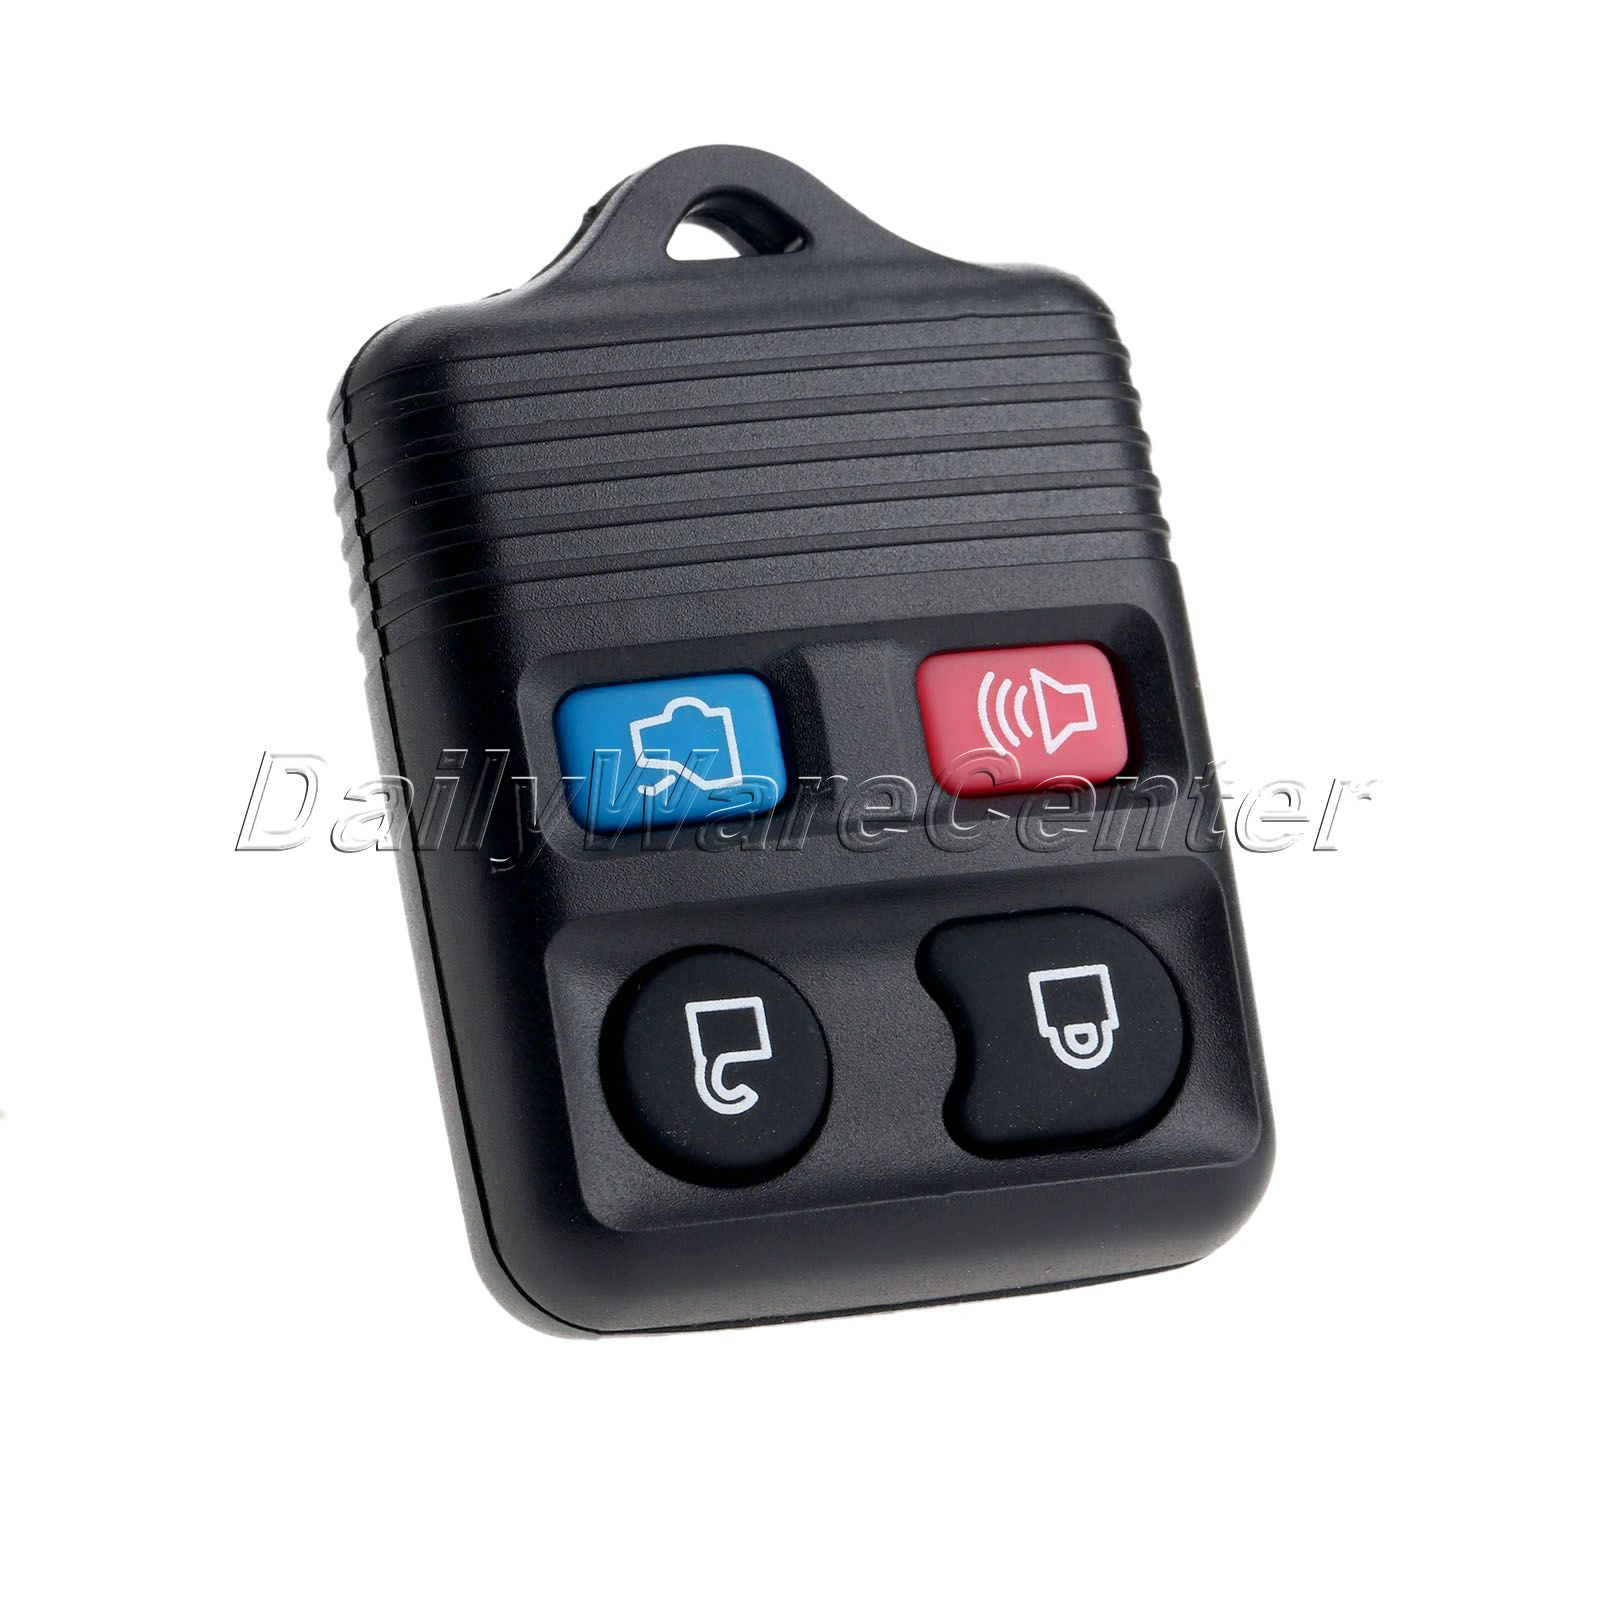 Aliexpress com buy new 4 button keyless entry remote control car key shell case replacement key fob transmitter clicker for ford explorer mercury from